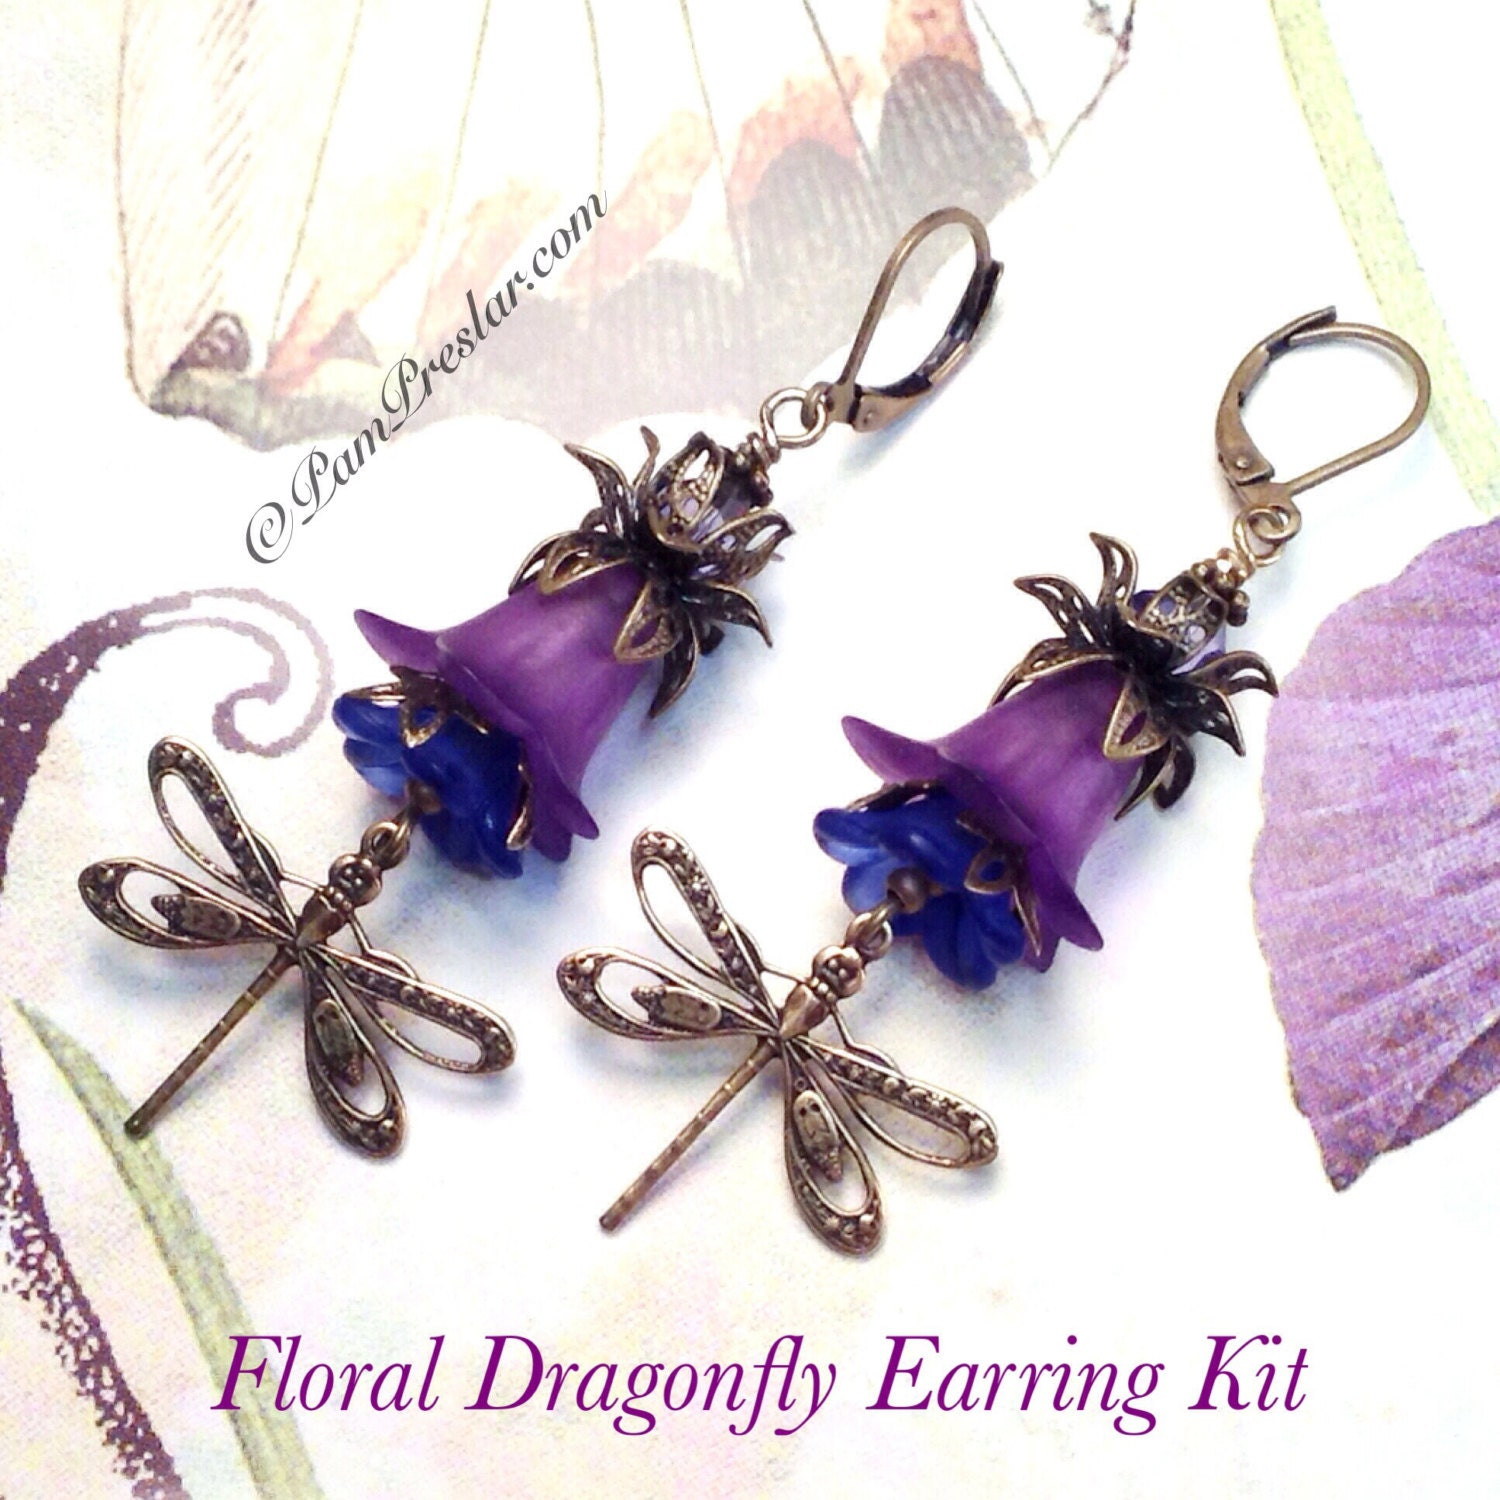 Do it yourself jewelry kit make your own earrings kit purple do it yourself jewelry kit make your own earrings kit purple floral dragonfly earring kit vintage flower design 001 solutioingenieria Choice Image